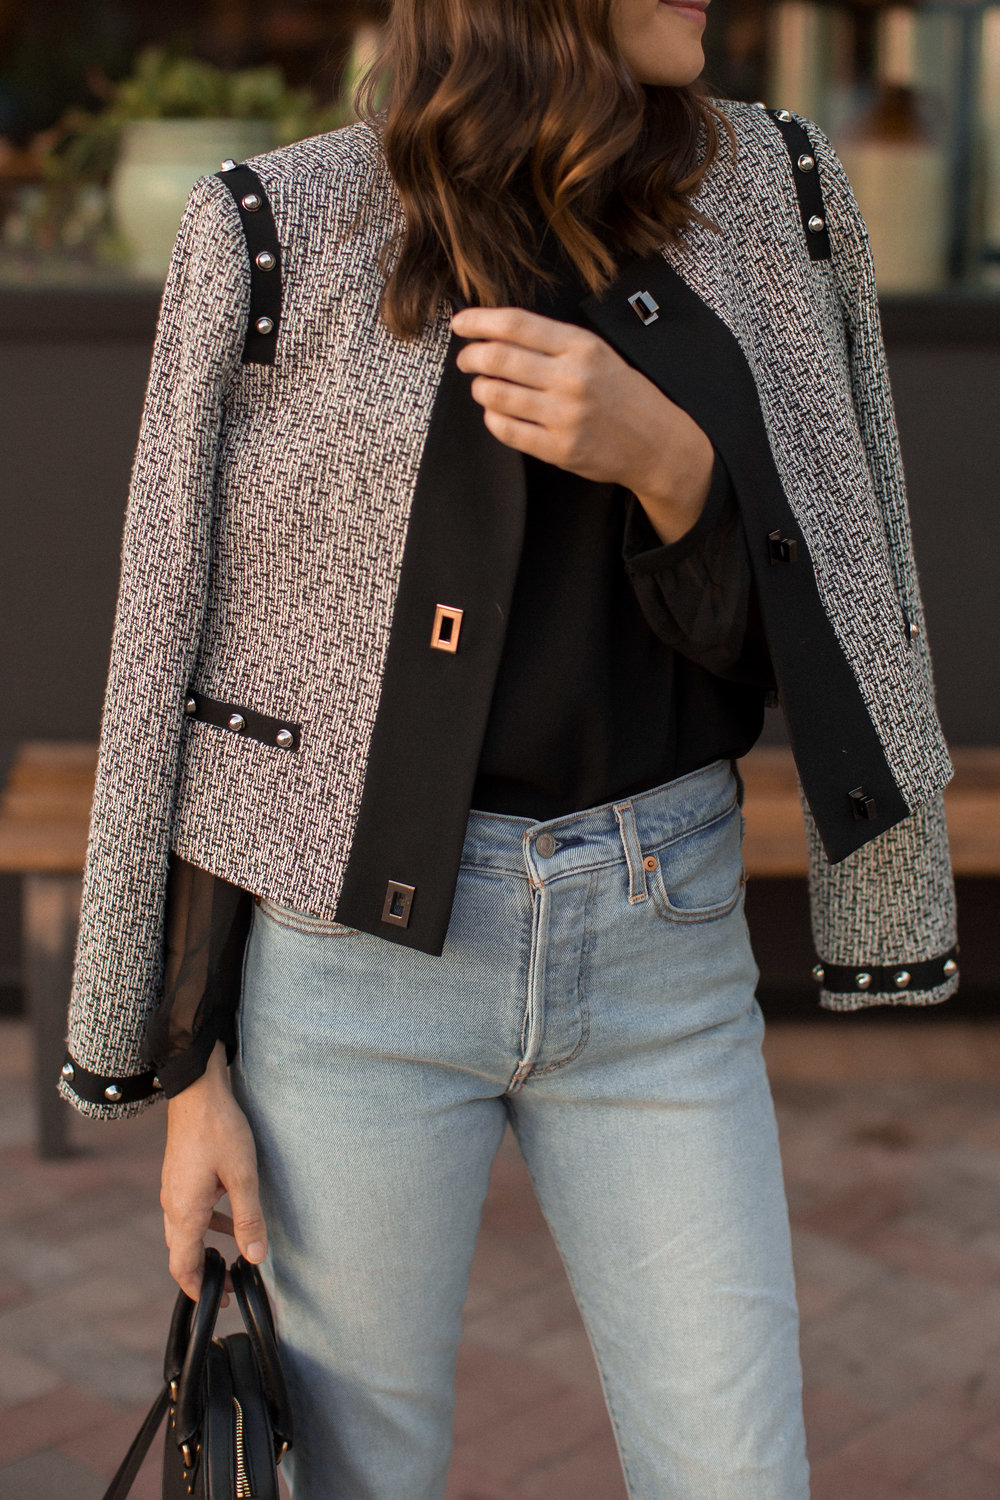 tweed jacket outfit